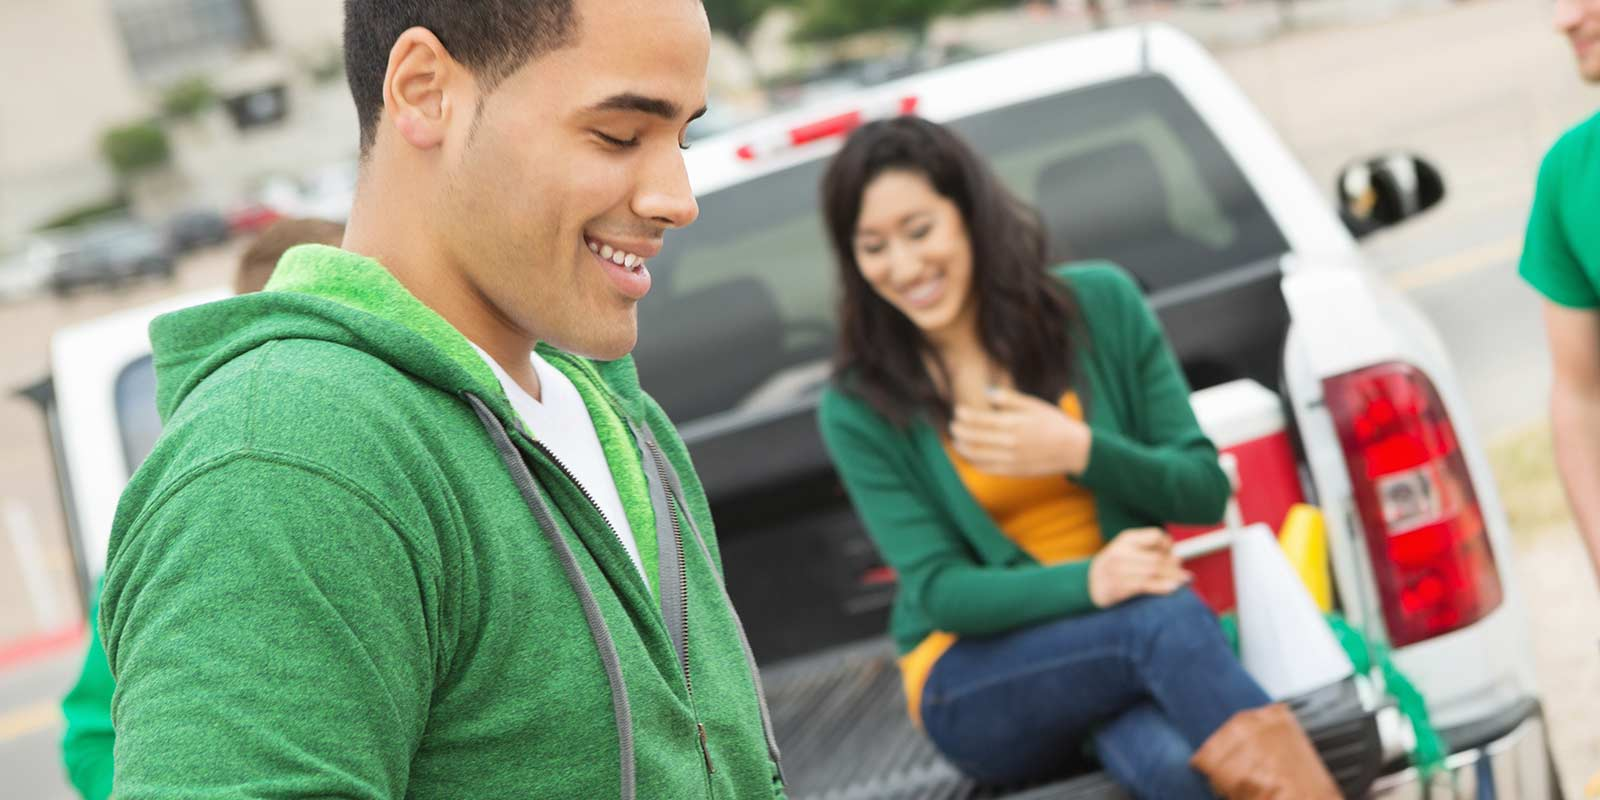 Upgrade your tailgate-get pre-approved for a new or used auto loan today!